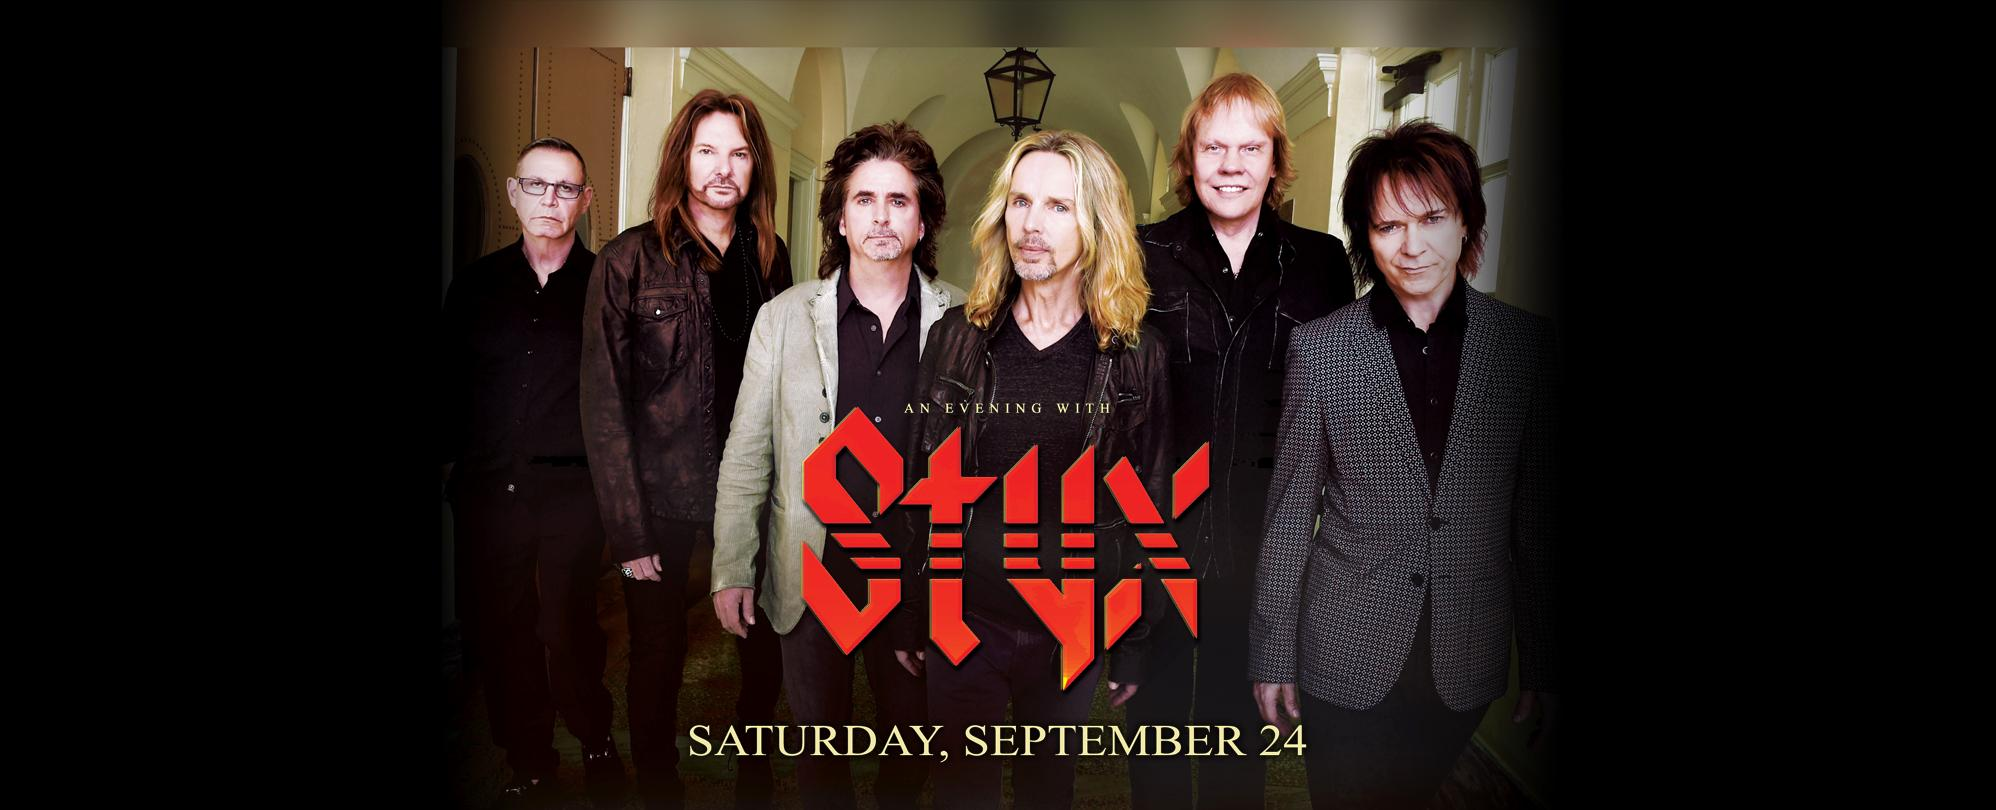 an evening with Styx